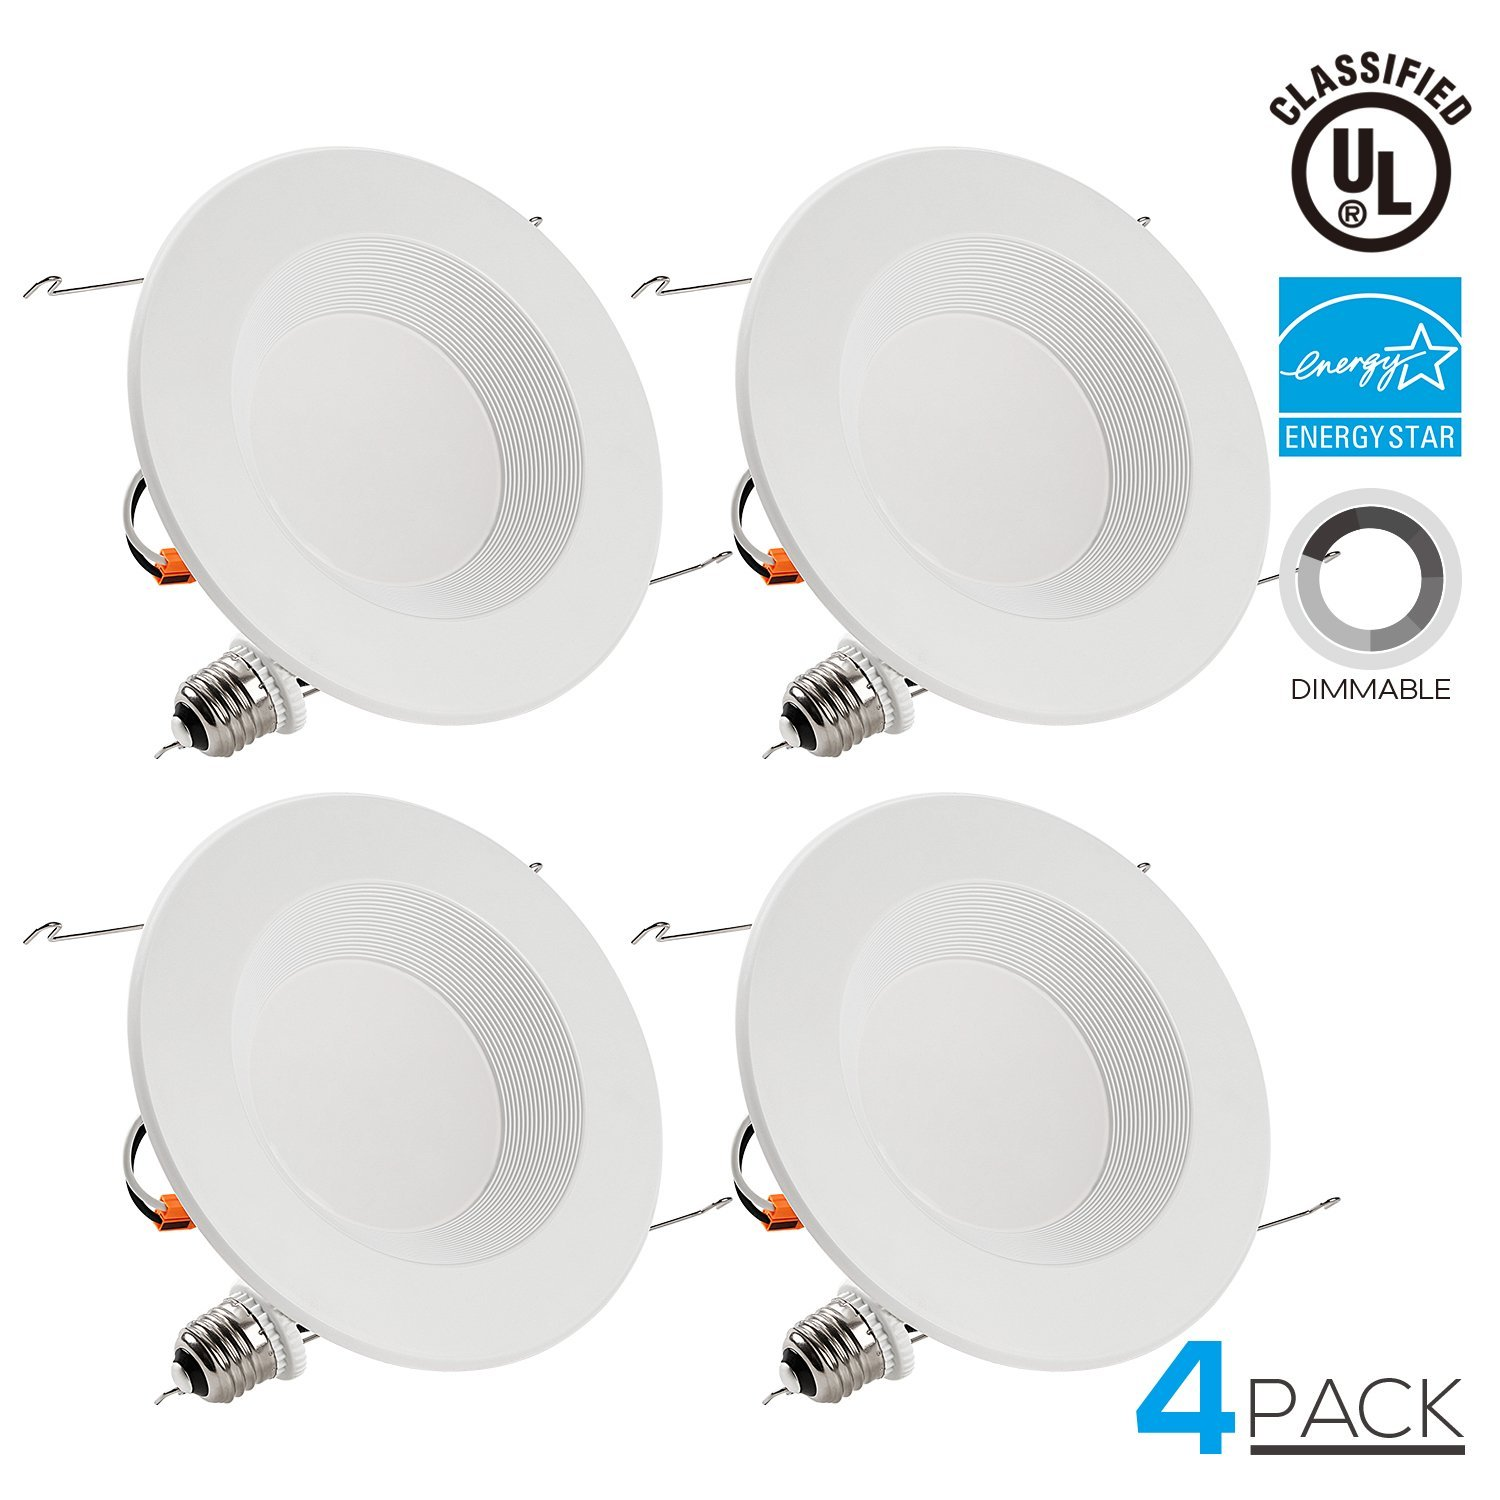 TORCHSTAR 5/6 Inch Dimmable Recessed LED Downlight, 13W (90W Equivalent), Energy Star, 2700K Soft White, 900lm, Retrofit LED Recessed Lighting Fixture, 5-YEAR Warranty, Pack of 4